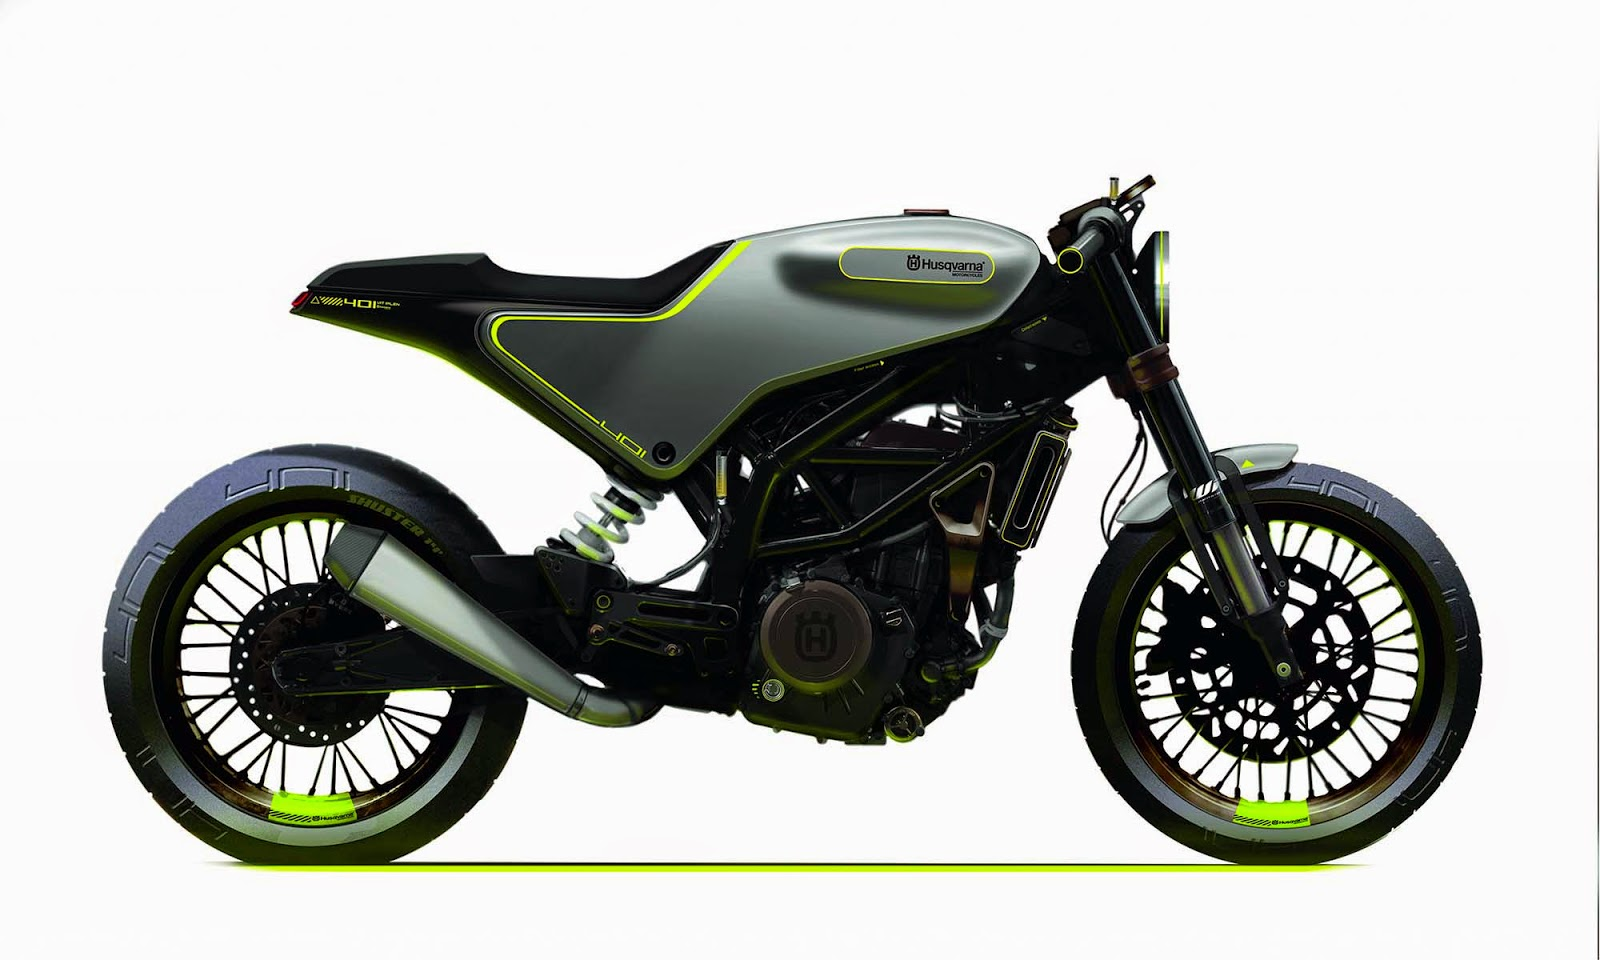 moto mucci behind the design kiska 39 s husqvarna 401 concept. Black Bedroom Furniture Sets. Home Design Ideas